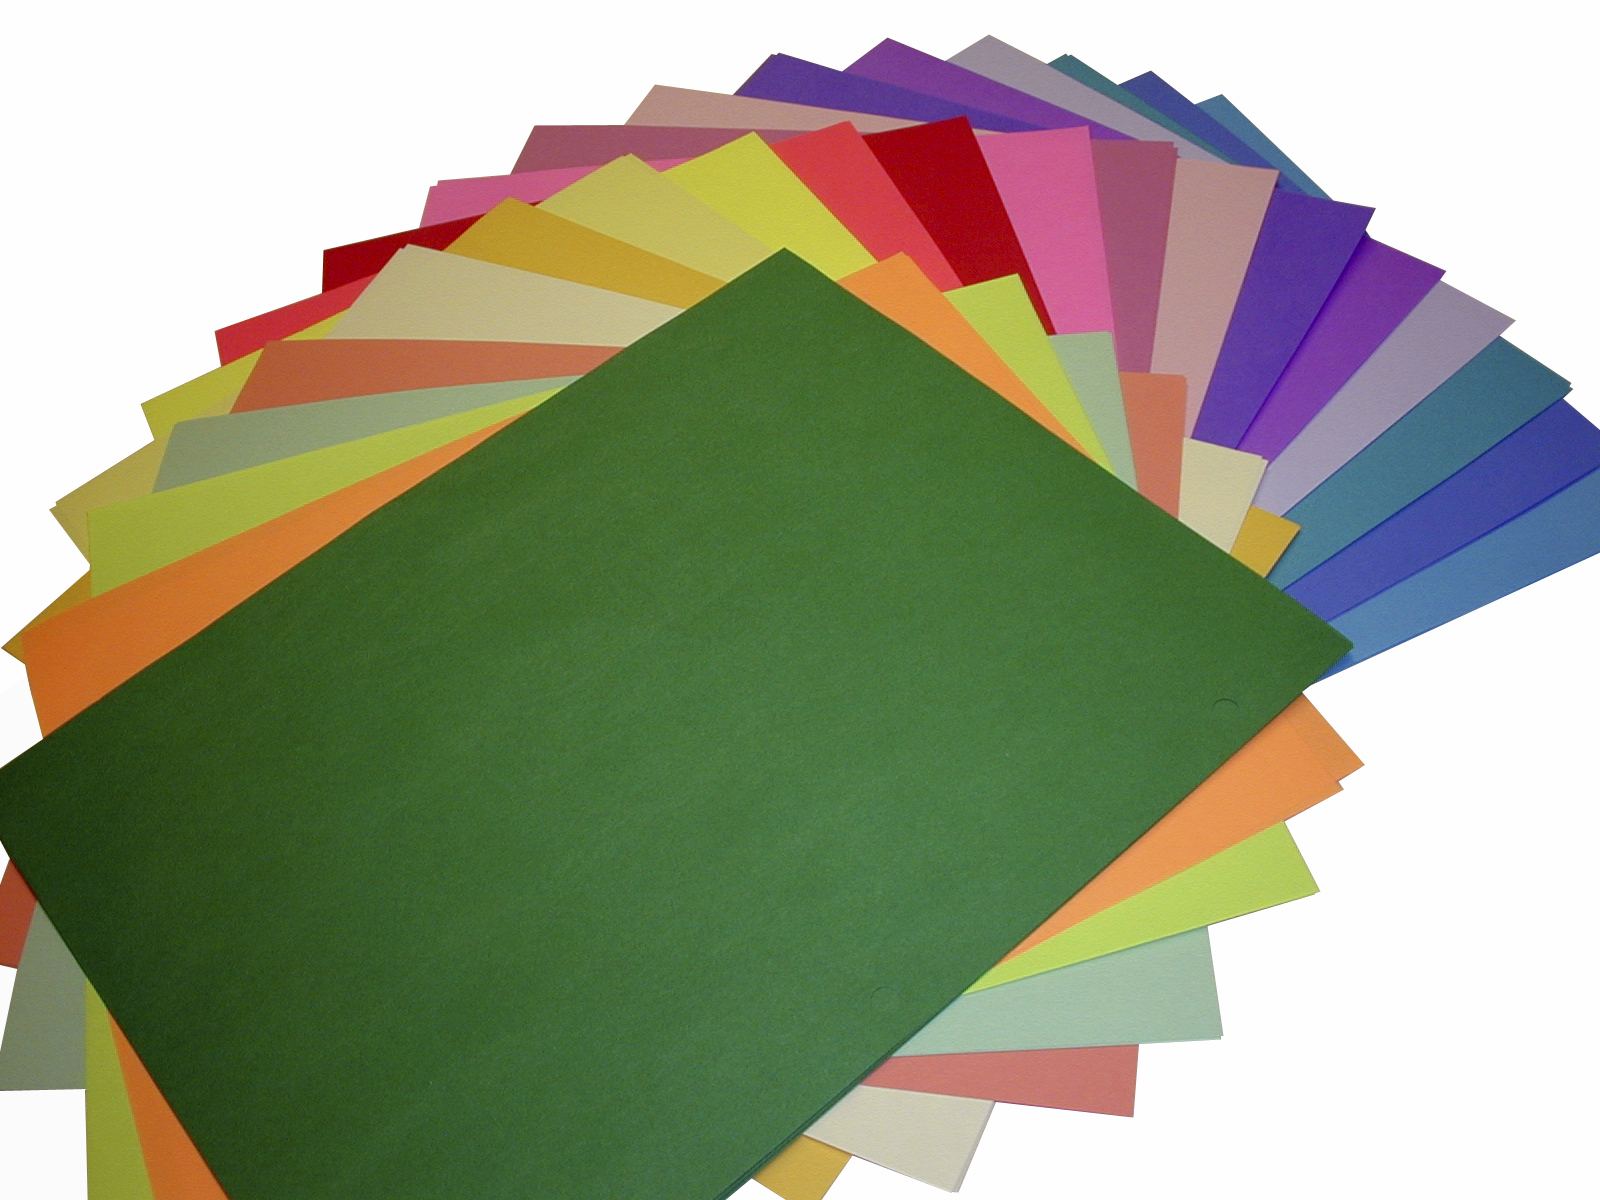 waste away group recycling colored paper